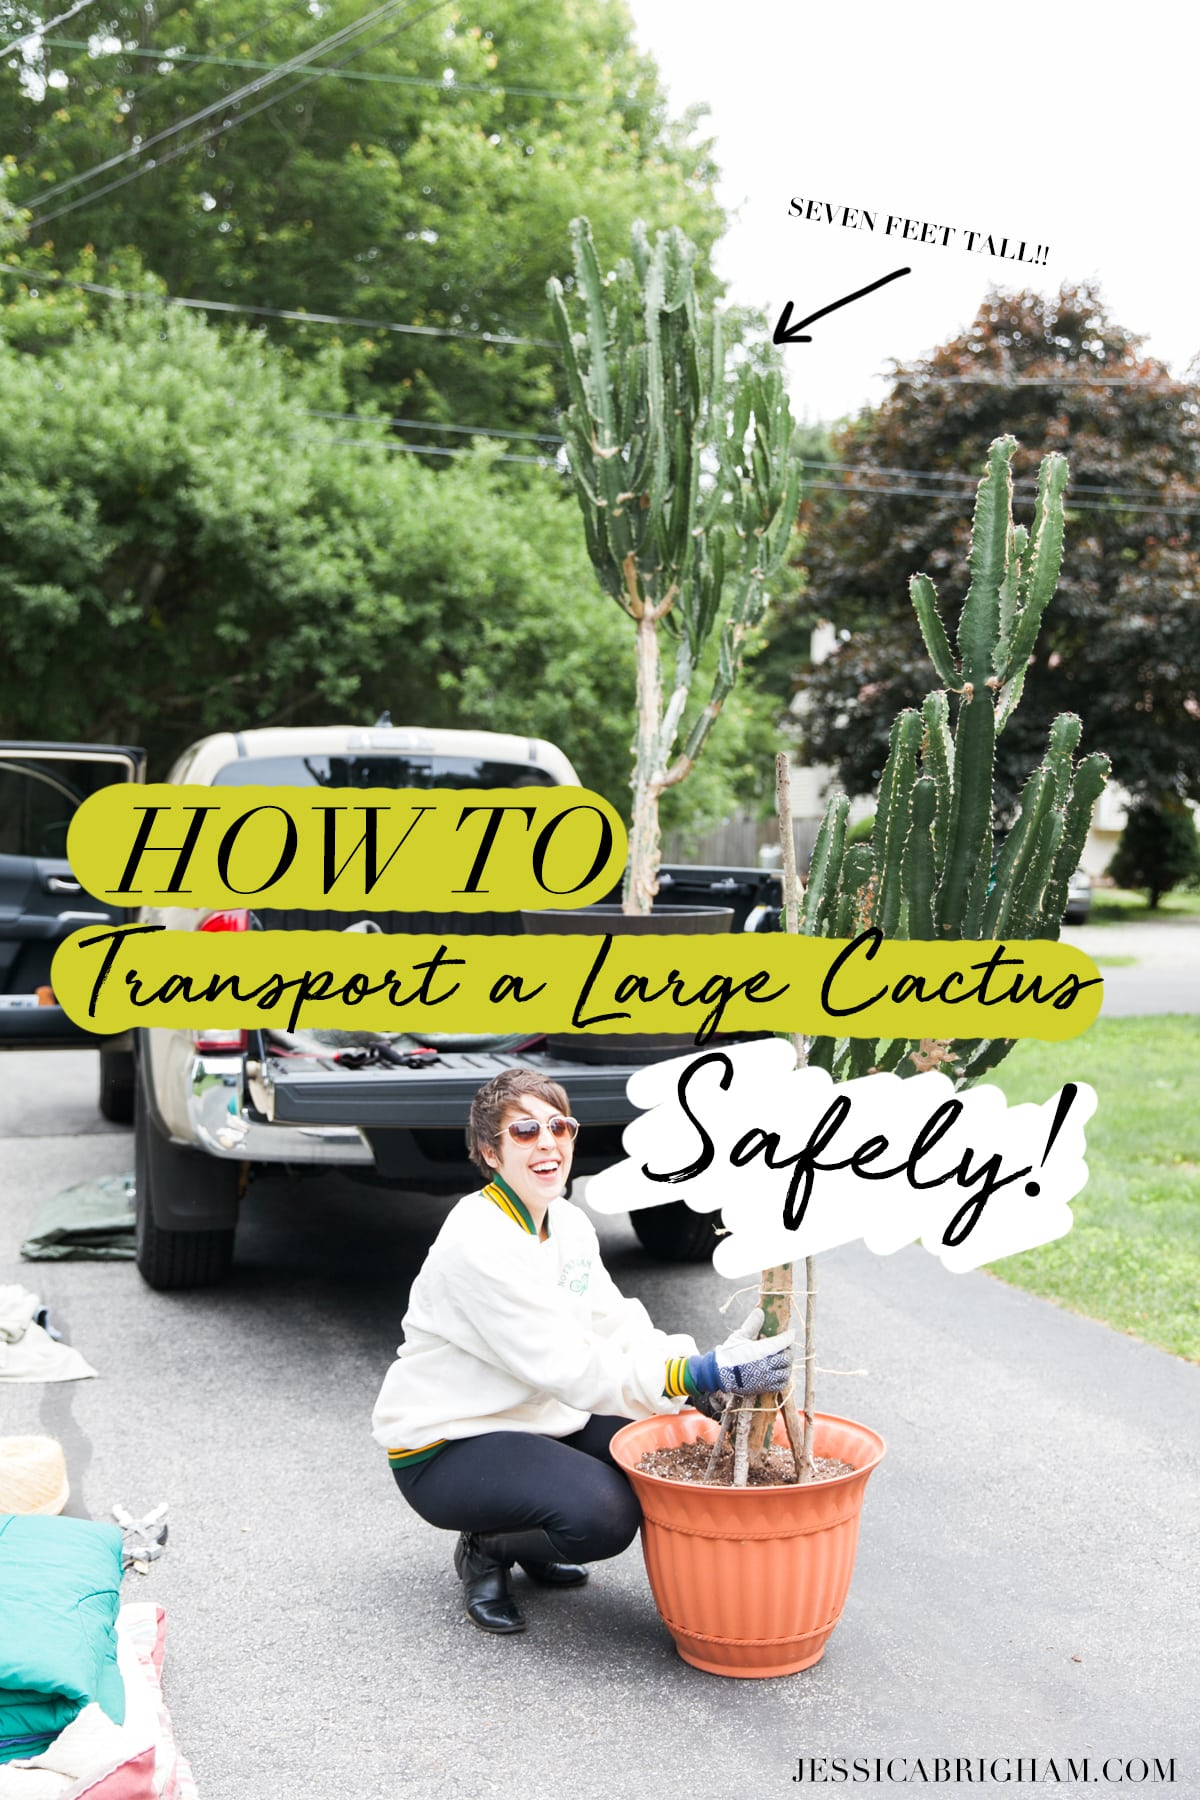 How to Transport a Large Cactus Safely | Long Distance Cactus Transport | How to Move Big Cactus | Jessica Brigham | Magazine Ready for Life